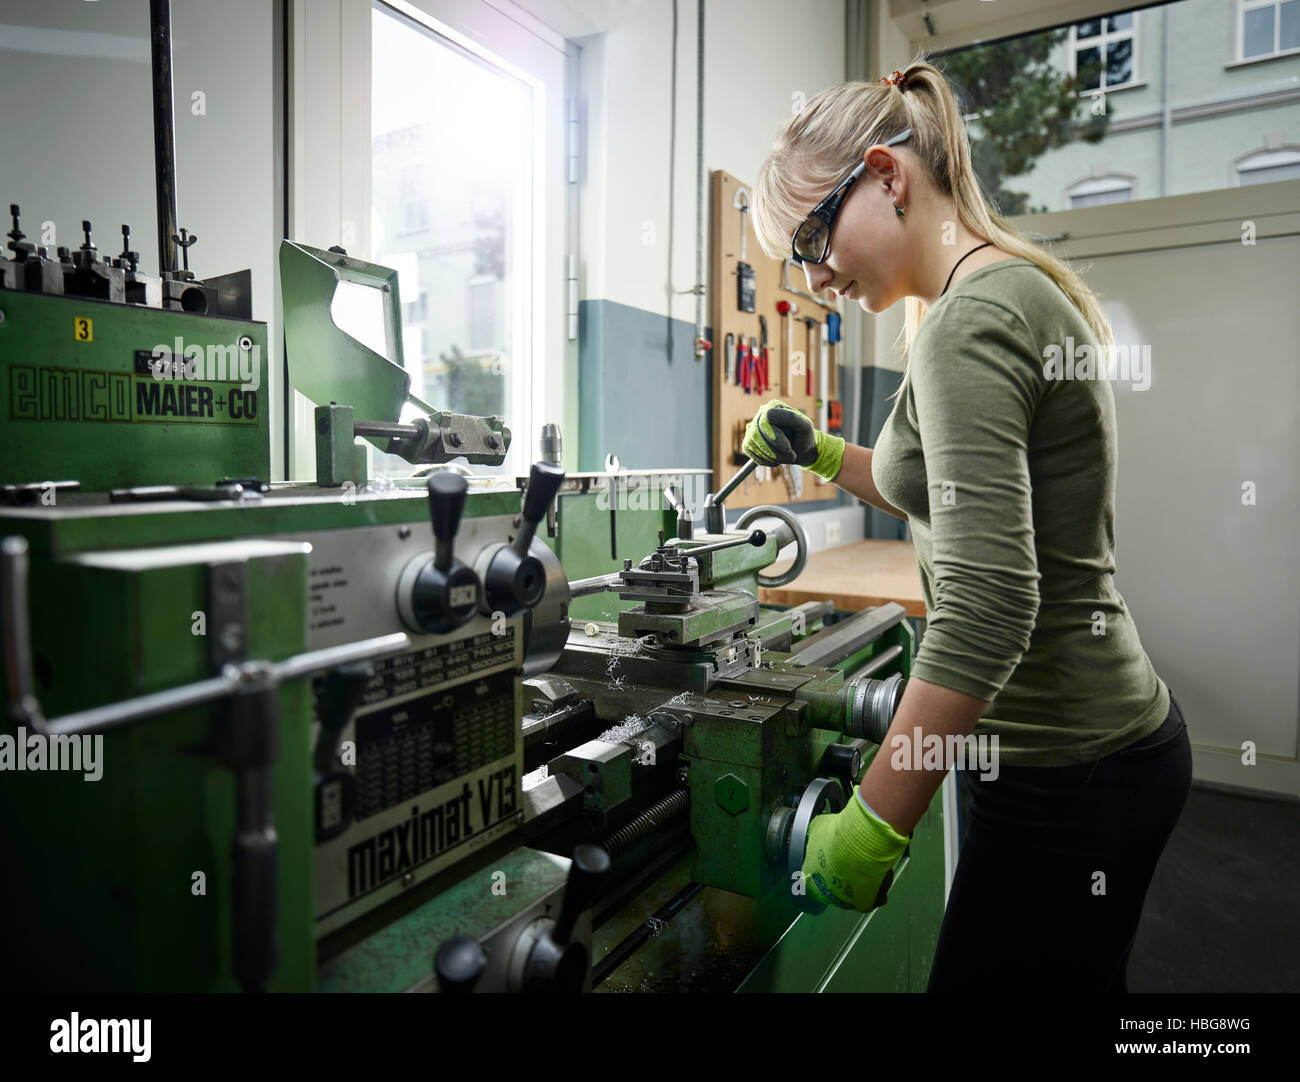 Young Woman Working On Lathe Metalwork Training Stock